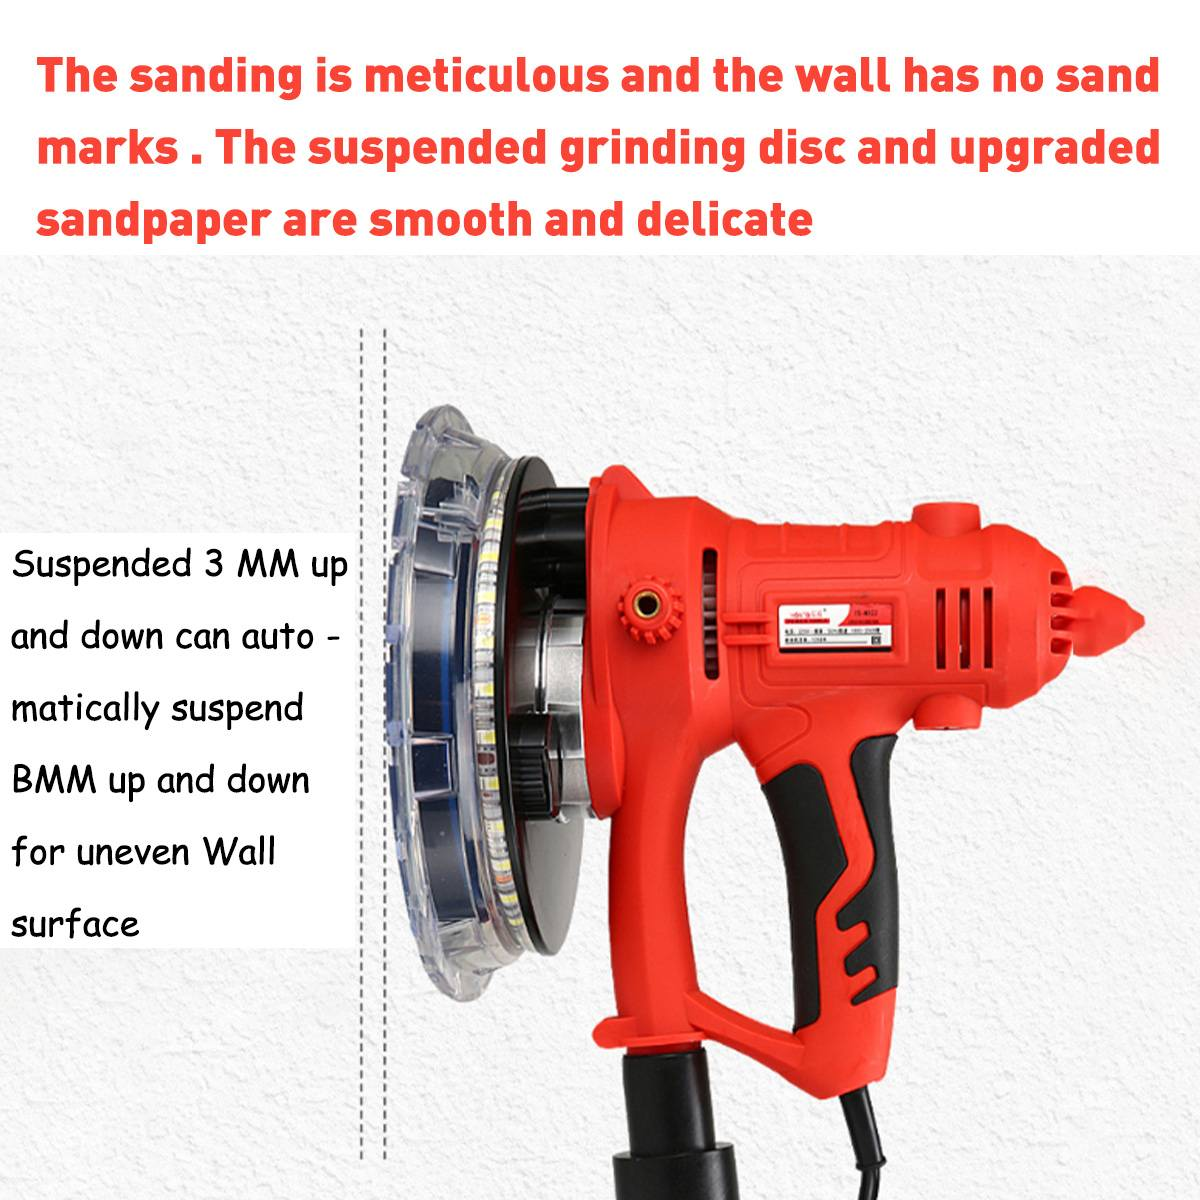 Tools : Doersupp Drywall Sander Wall Polishing Machine Grinding 220V 1350W Portable Led Light 1000-3000R min Wall Putty Polisher Machine